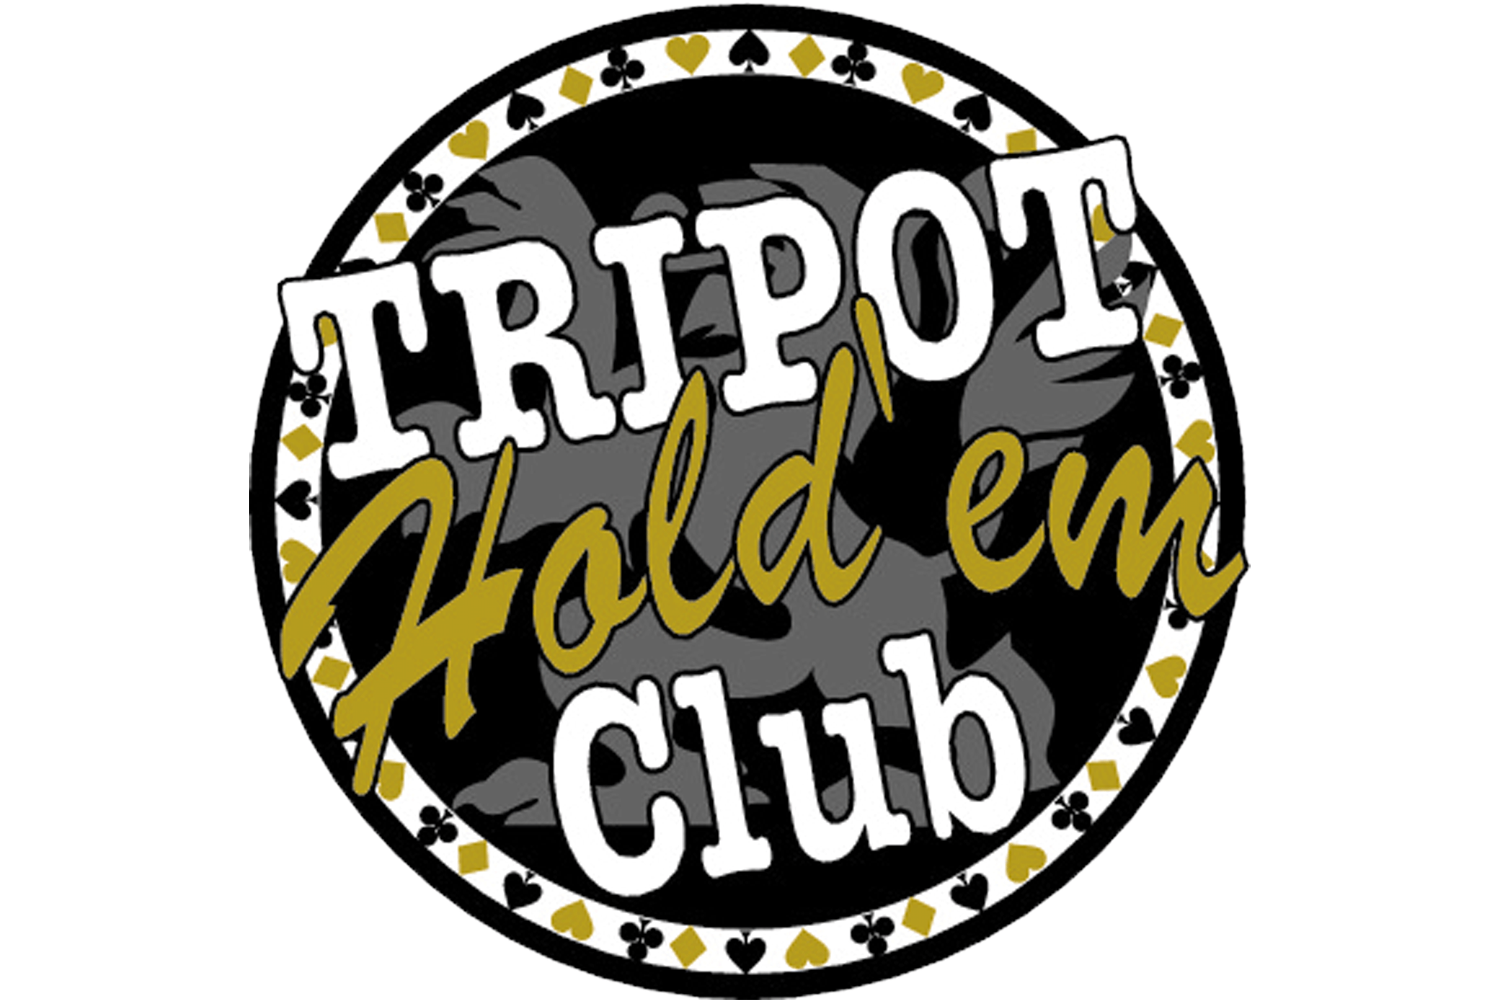 Tripot Holdem Club